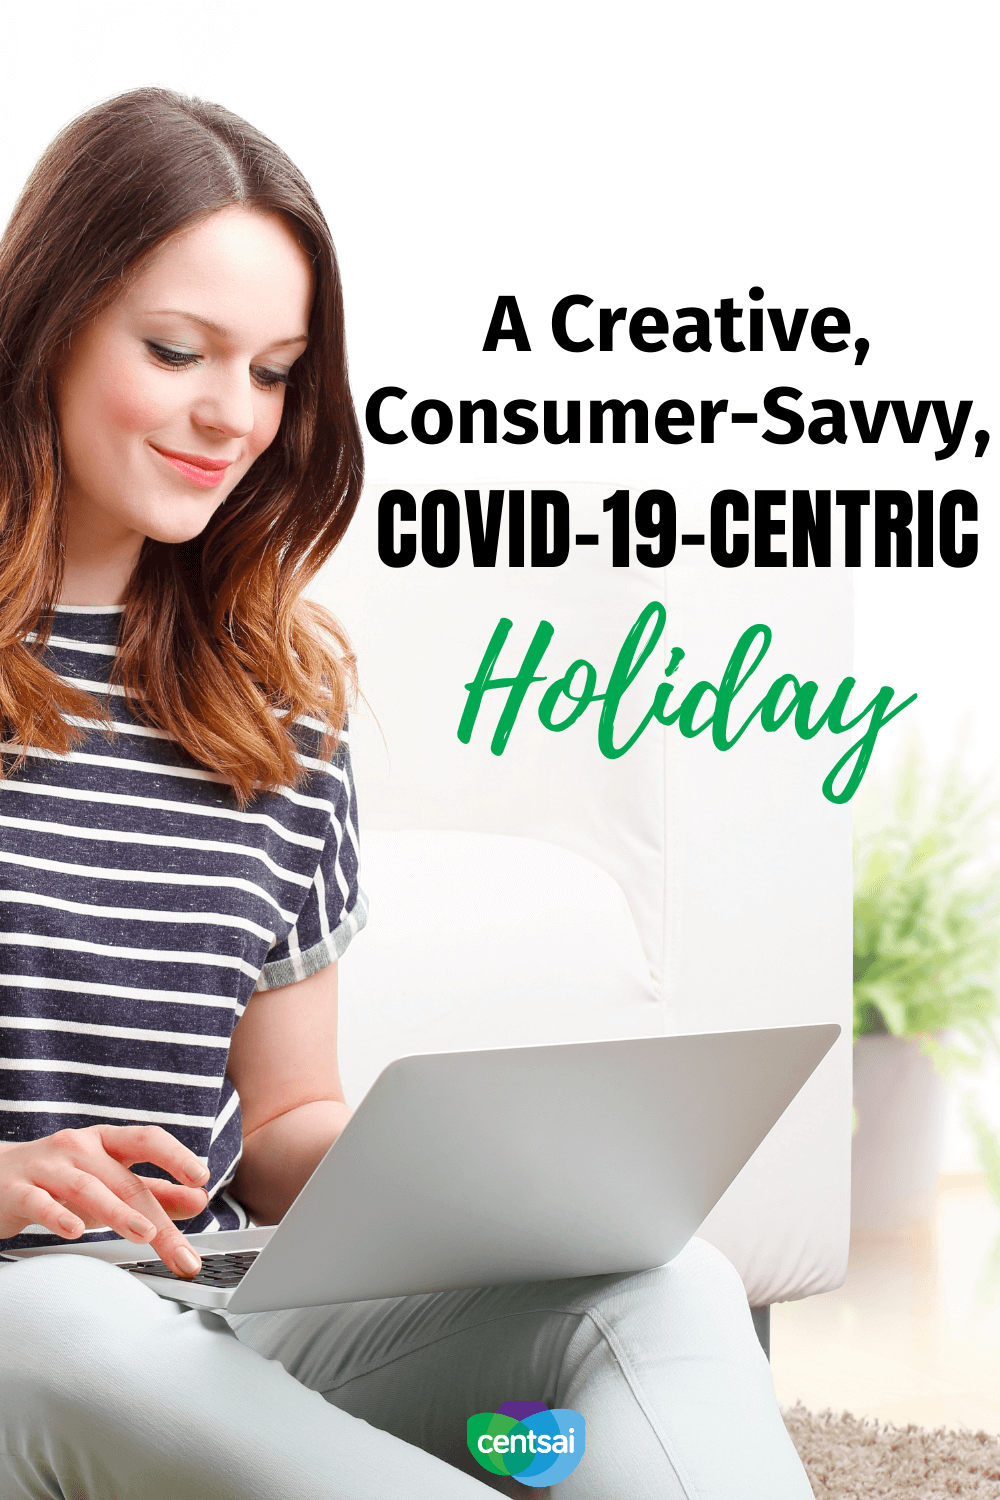 A Creative, Consumer-Savvy, COVID-19-Centric Holiday. Maintain your personal well-being (both financially and otherwise) with these 12 recommendations for your COVID-19 holiday planning. #CentSai #financialplanning #personalfinancetips #frugality